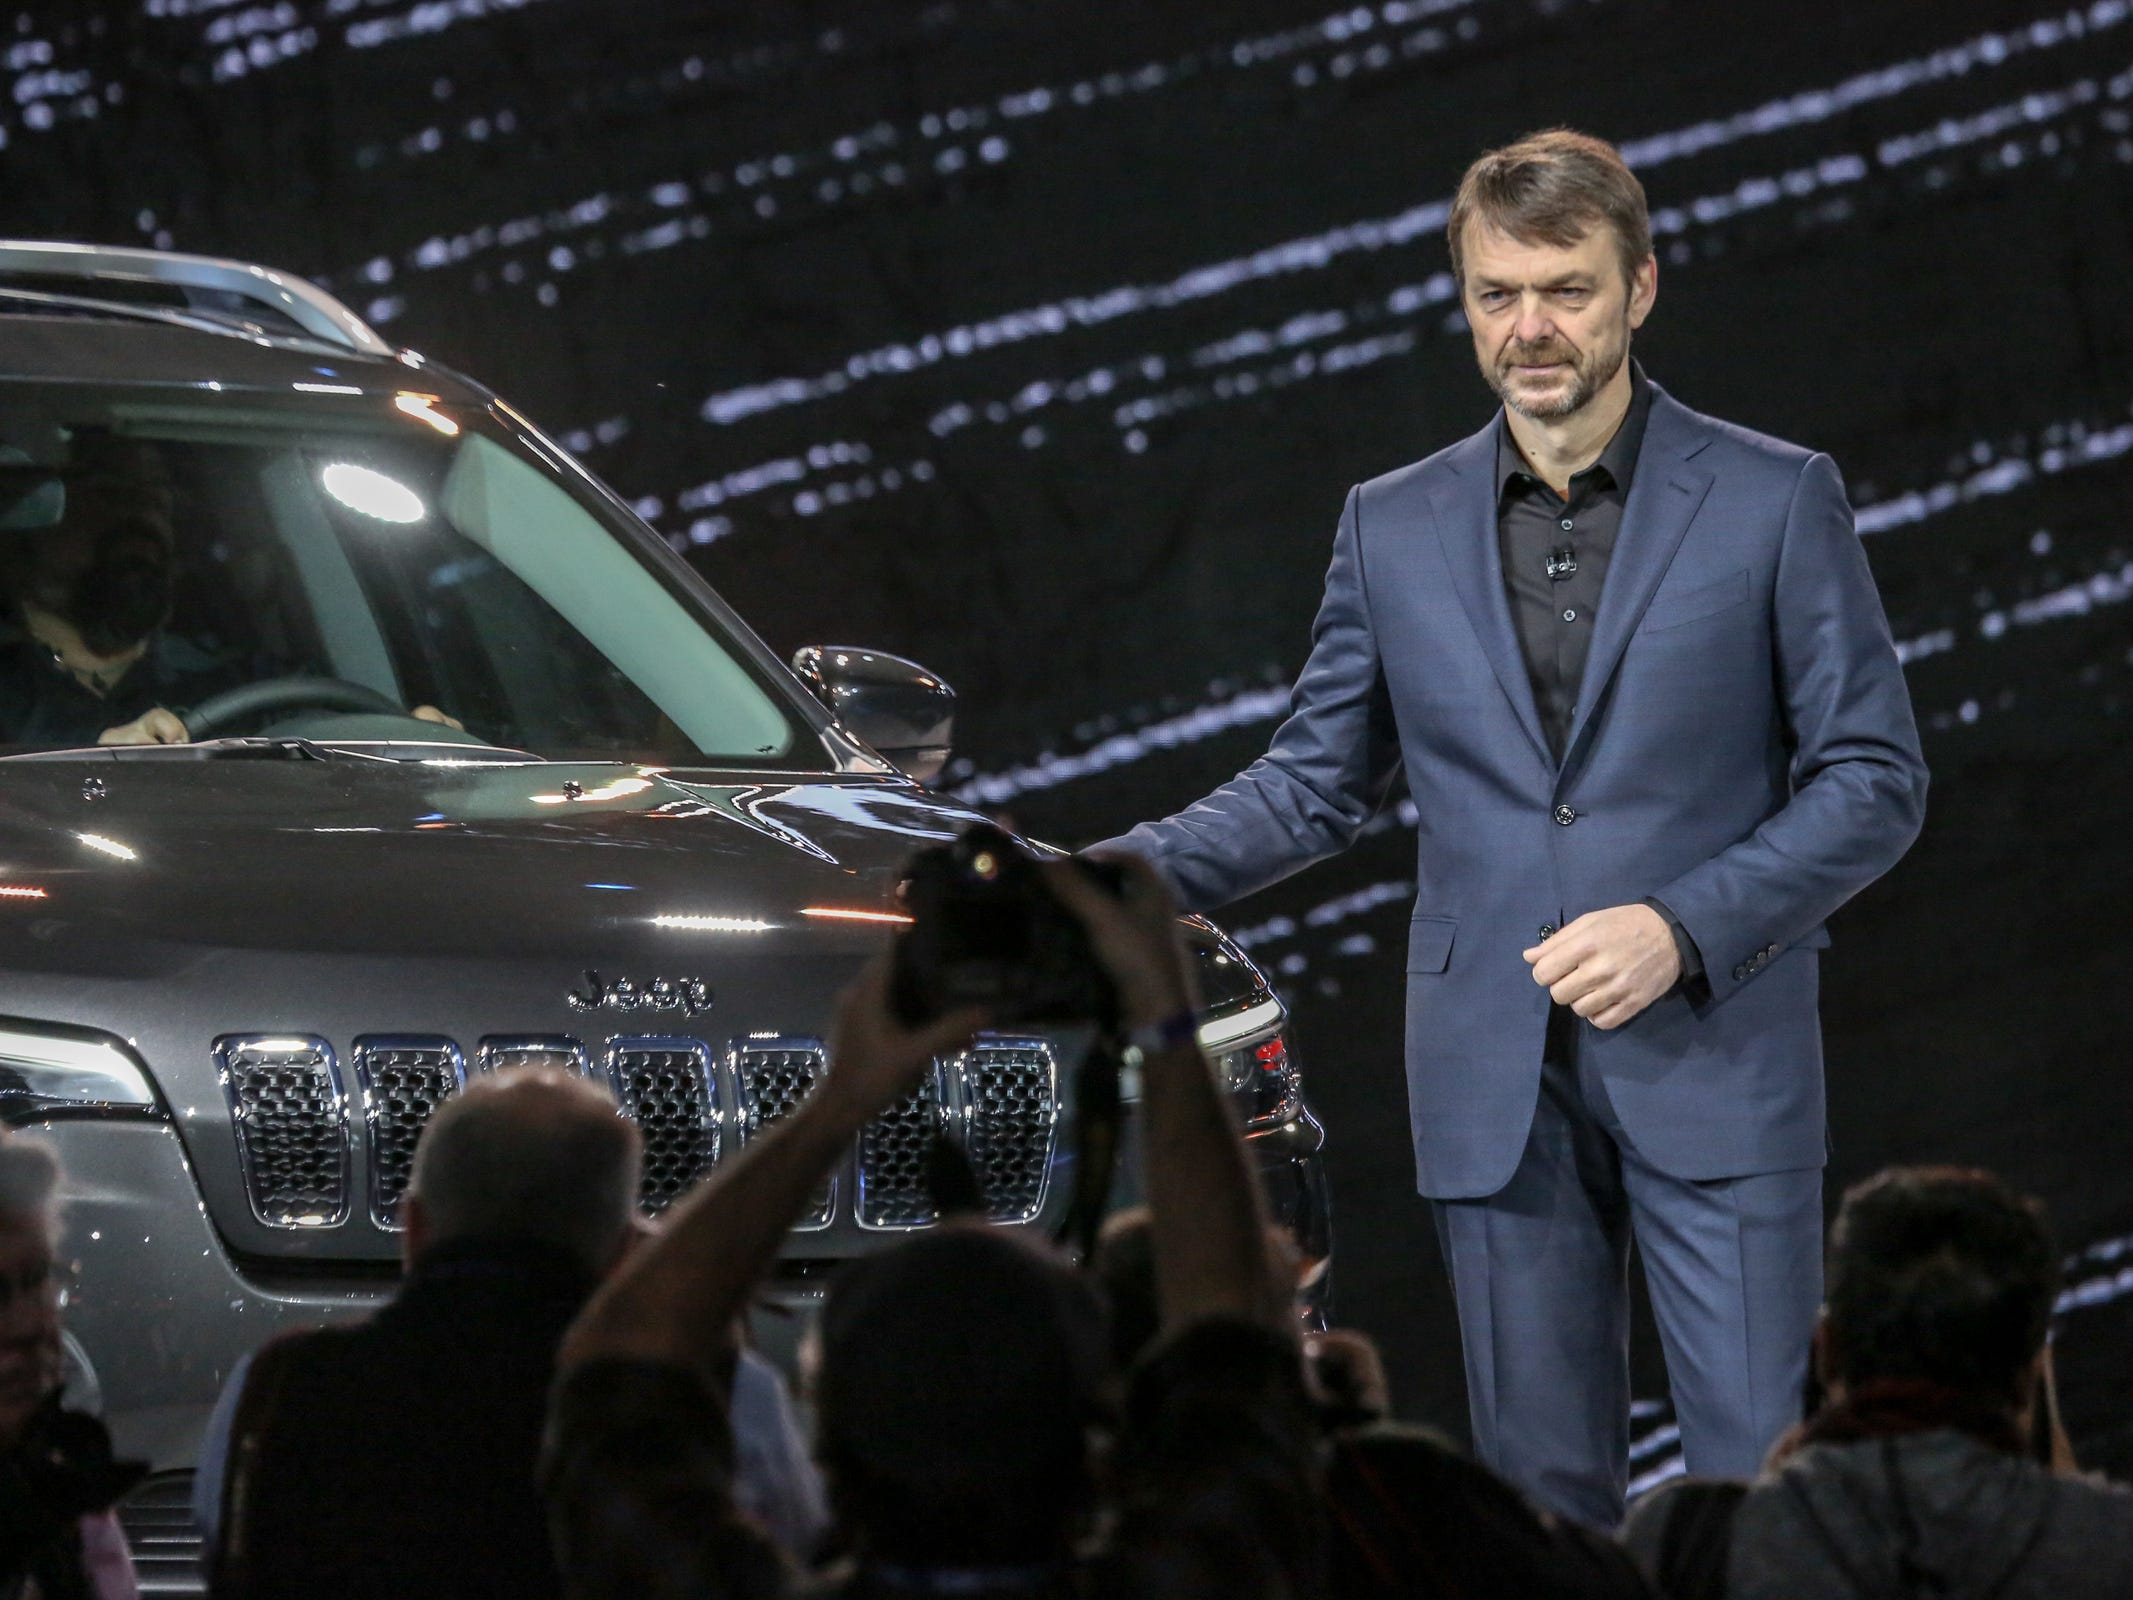 Mike Manley, Head of Jeep Brand, presents the 2019 Jeep Cherokee, during the 2018 North American International Auto Show held at Cobo Center in downtown Detroit on Tuesday, Jan. 16, 2017.